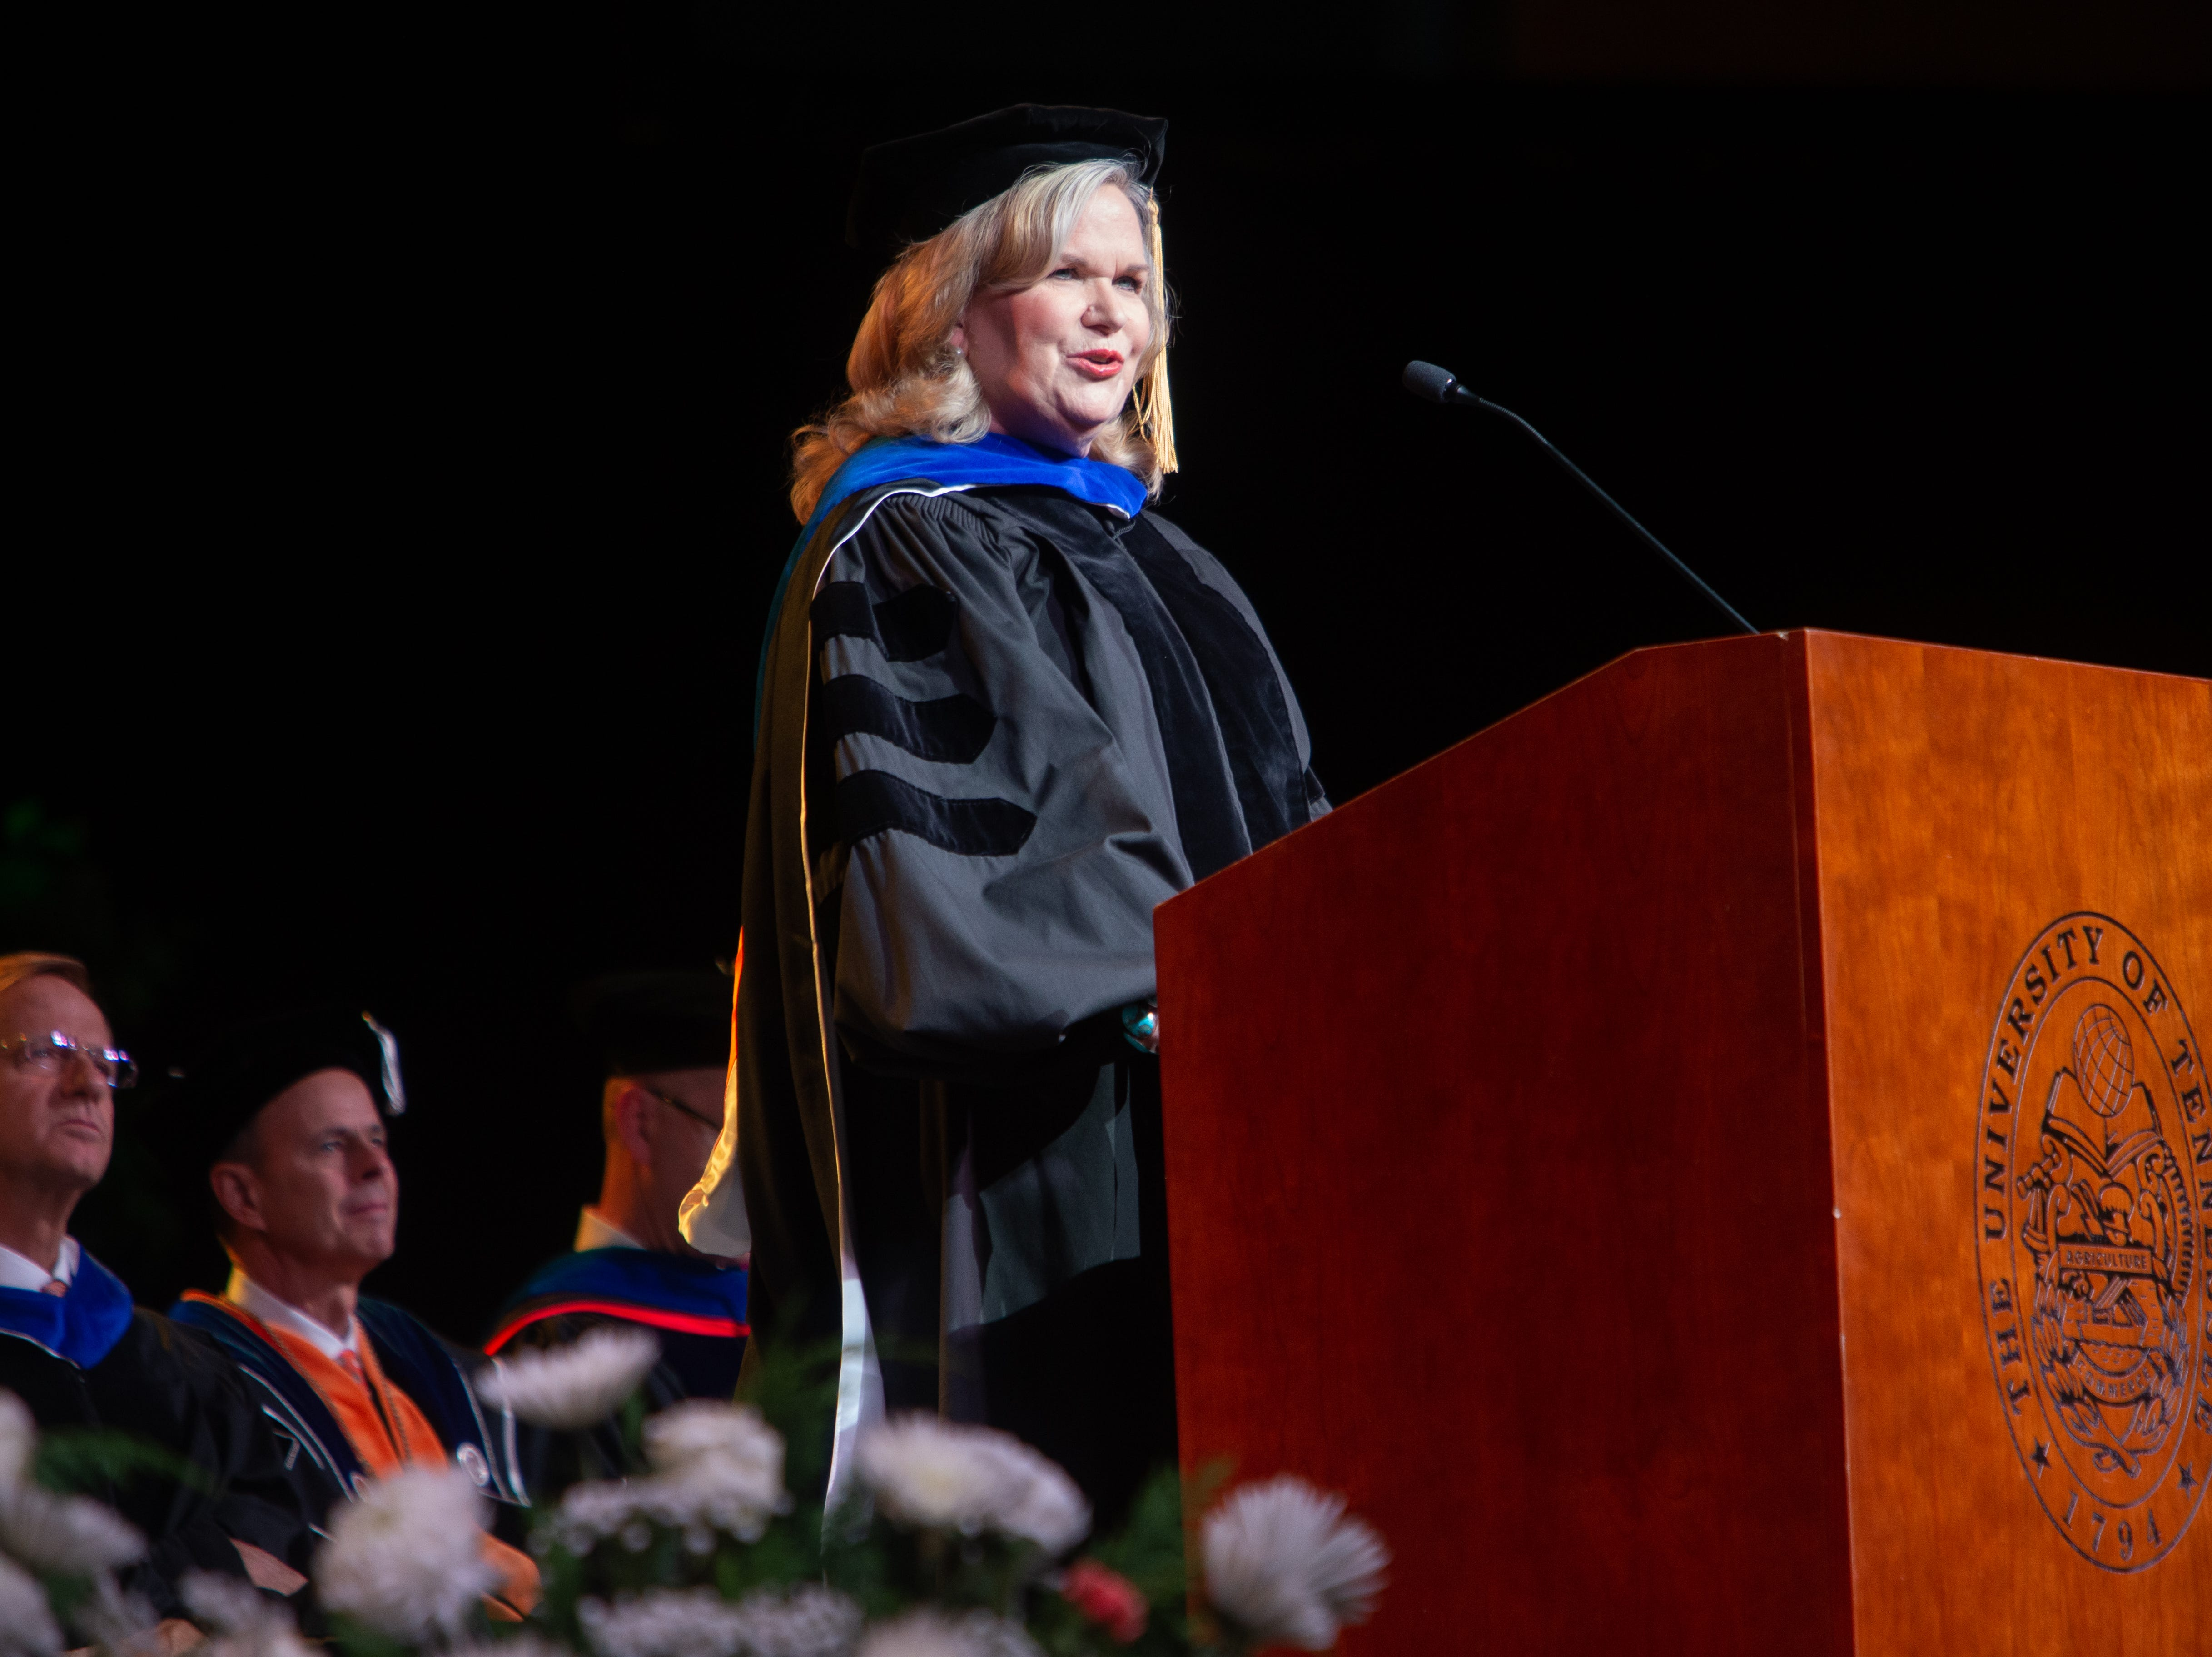 Alumni Susan Crunk speaks to the graduates during the University of Tennessee winter Commencement ceremony at Thompson-Boling Assembly Center and Arena in Knoxville Friday, Dec. 14, 2018.